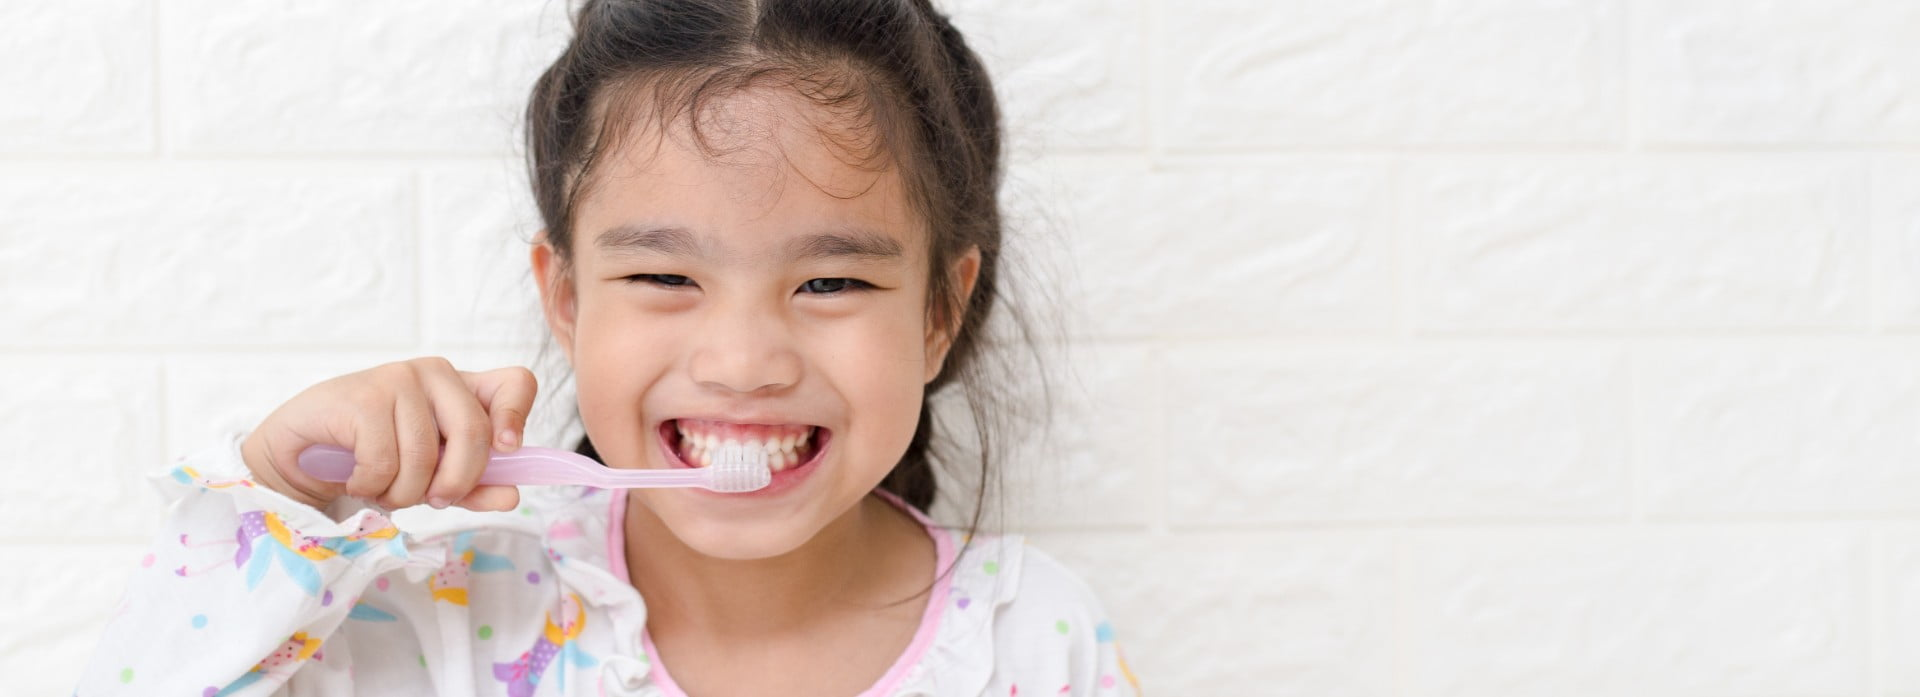 6 steps for how to brush your children's teeth correctly